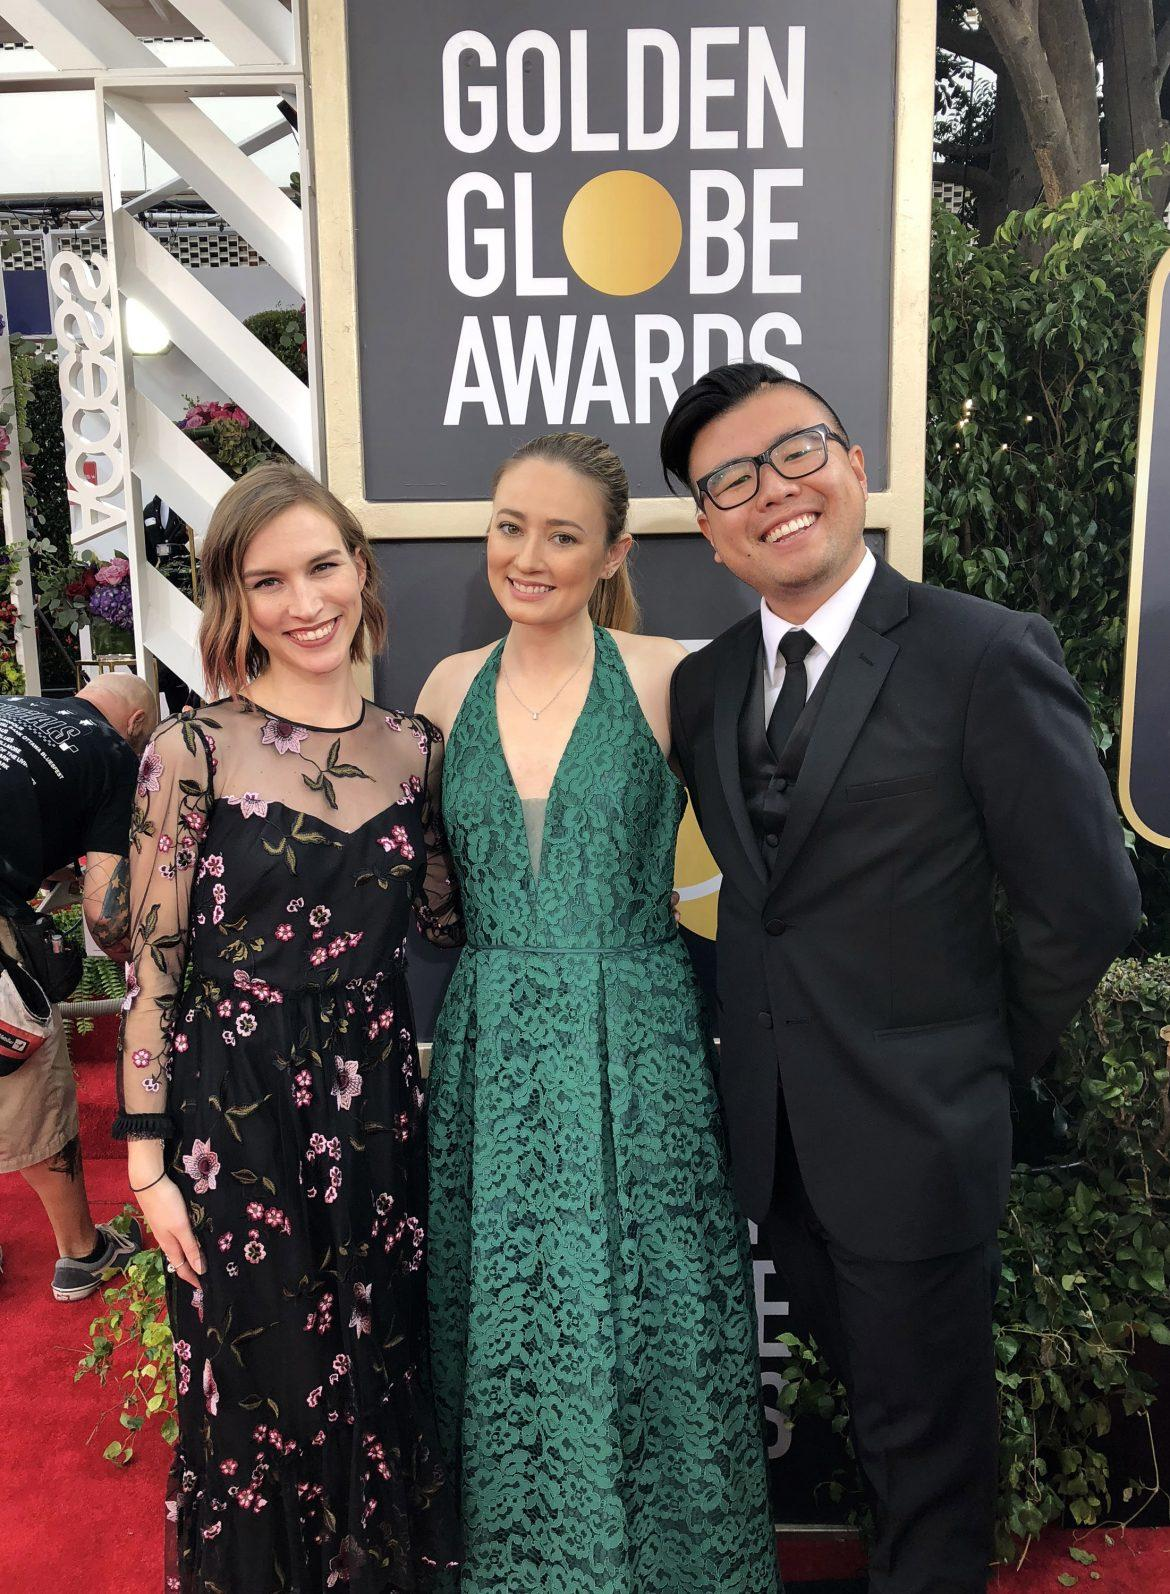 Allison Bird (left), Amanda Derzy (center) and Robert Ahn (right) in the middle of the red carpet at the Beverly Hilton Hotel.